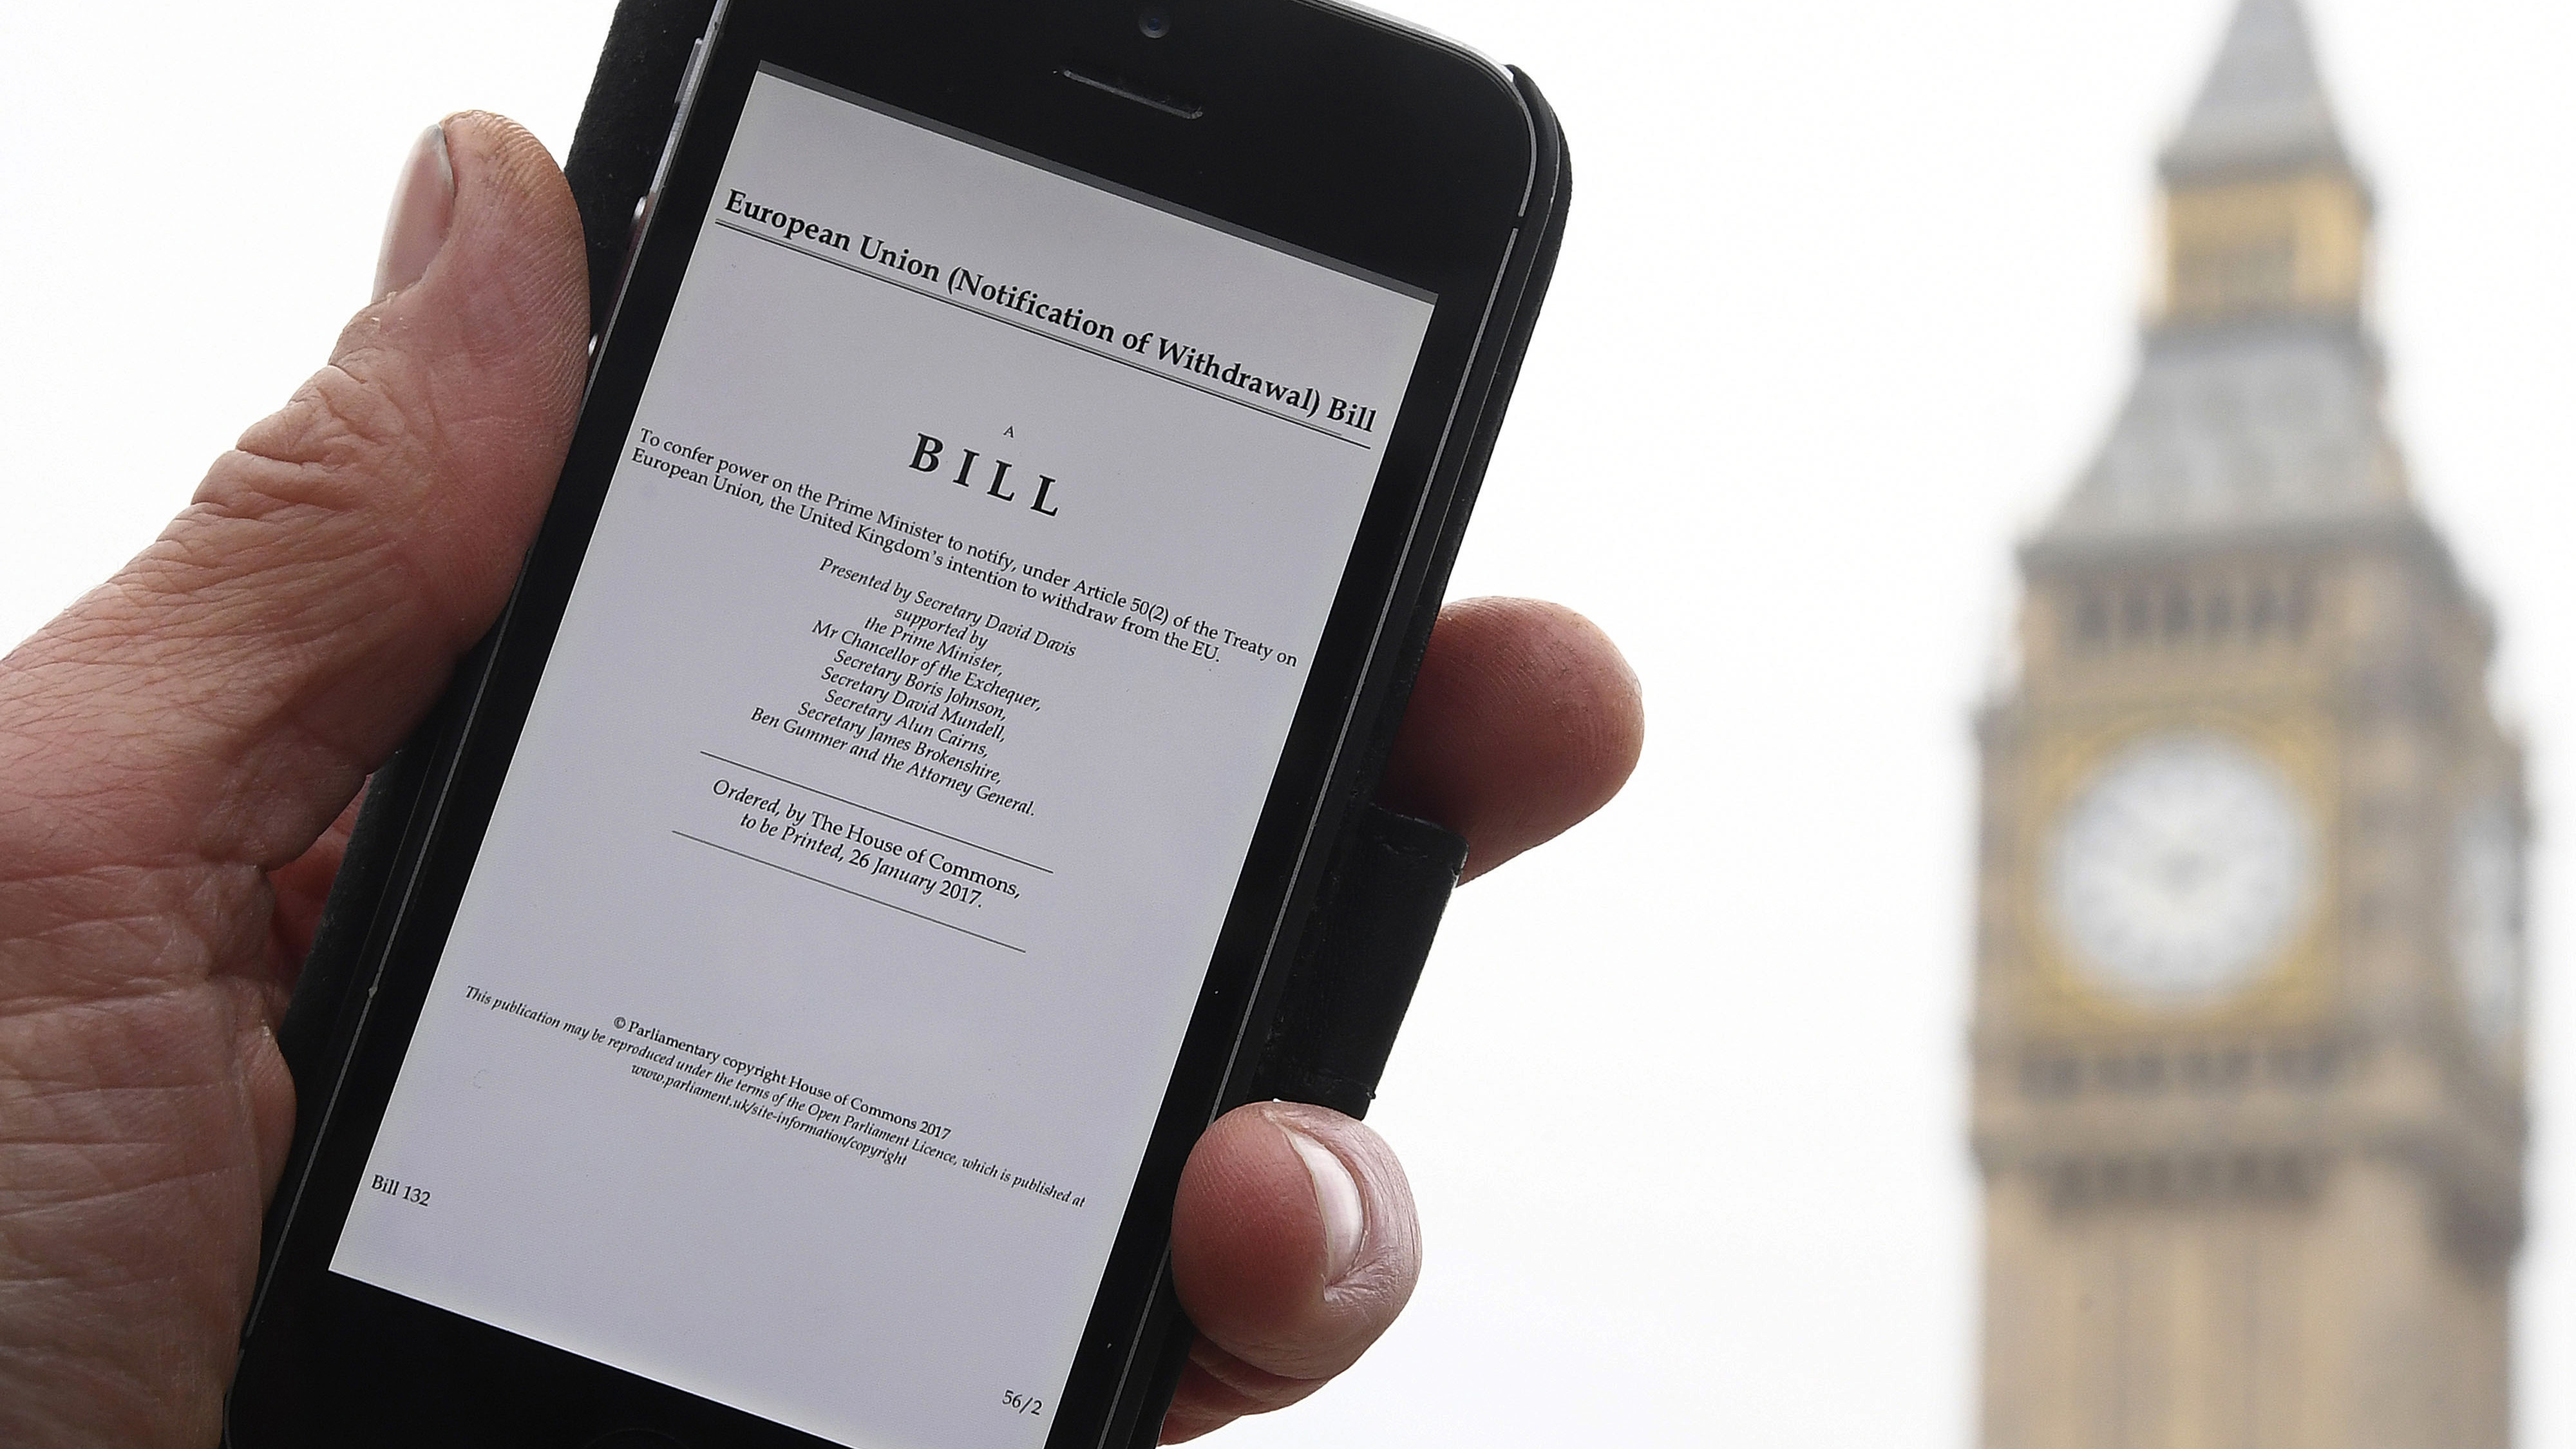 A man poses with an electronic copy of the Brexit Article 50  bill, introduced by the government to seek parliamentary approval to start the process of leaving the European Union, in front of the Houses of Parliament in London, Britain, January 26, 2017. REUTERS/Toby Melville - RTSXHJ2